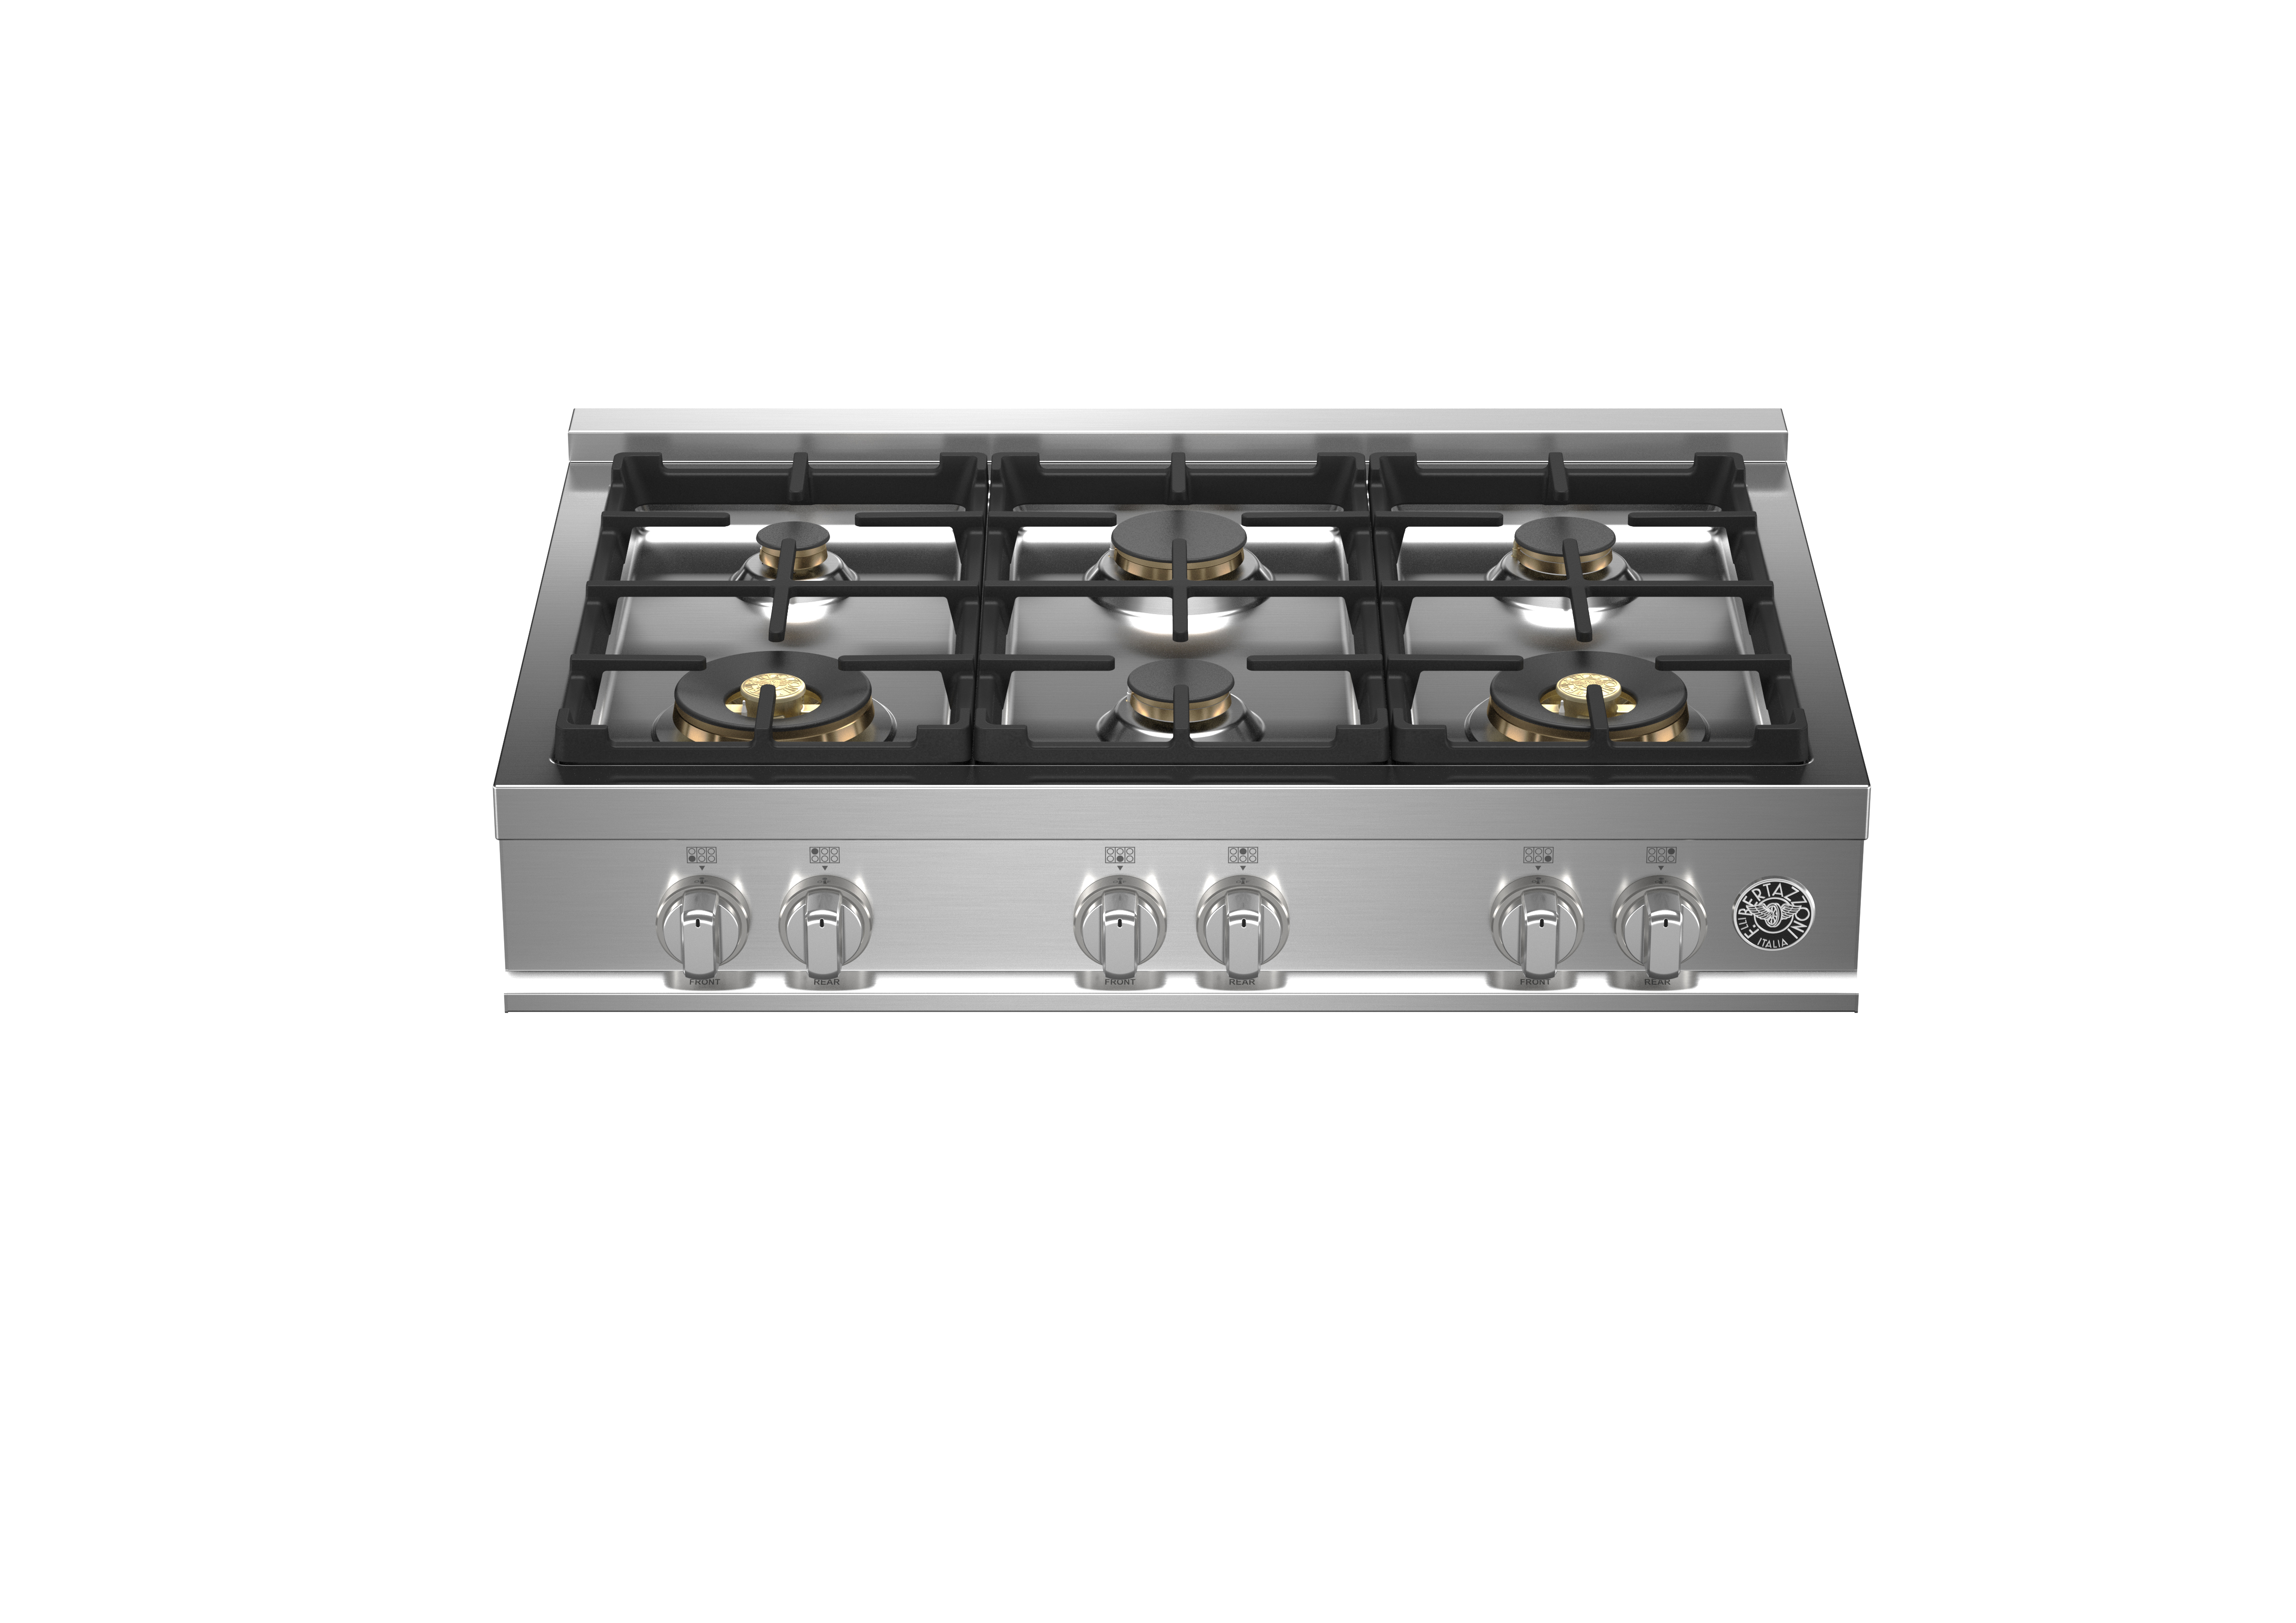 Bertazzoni Cooktop MAST366RTBXT in Stainless Steel color showcased by Corbeil Electro Store